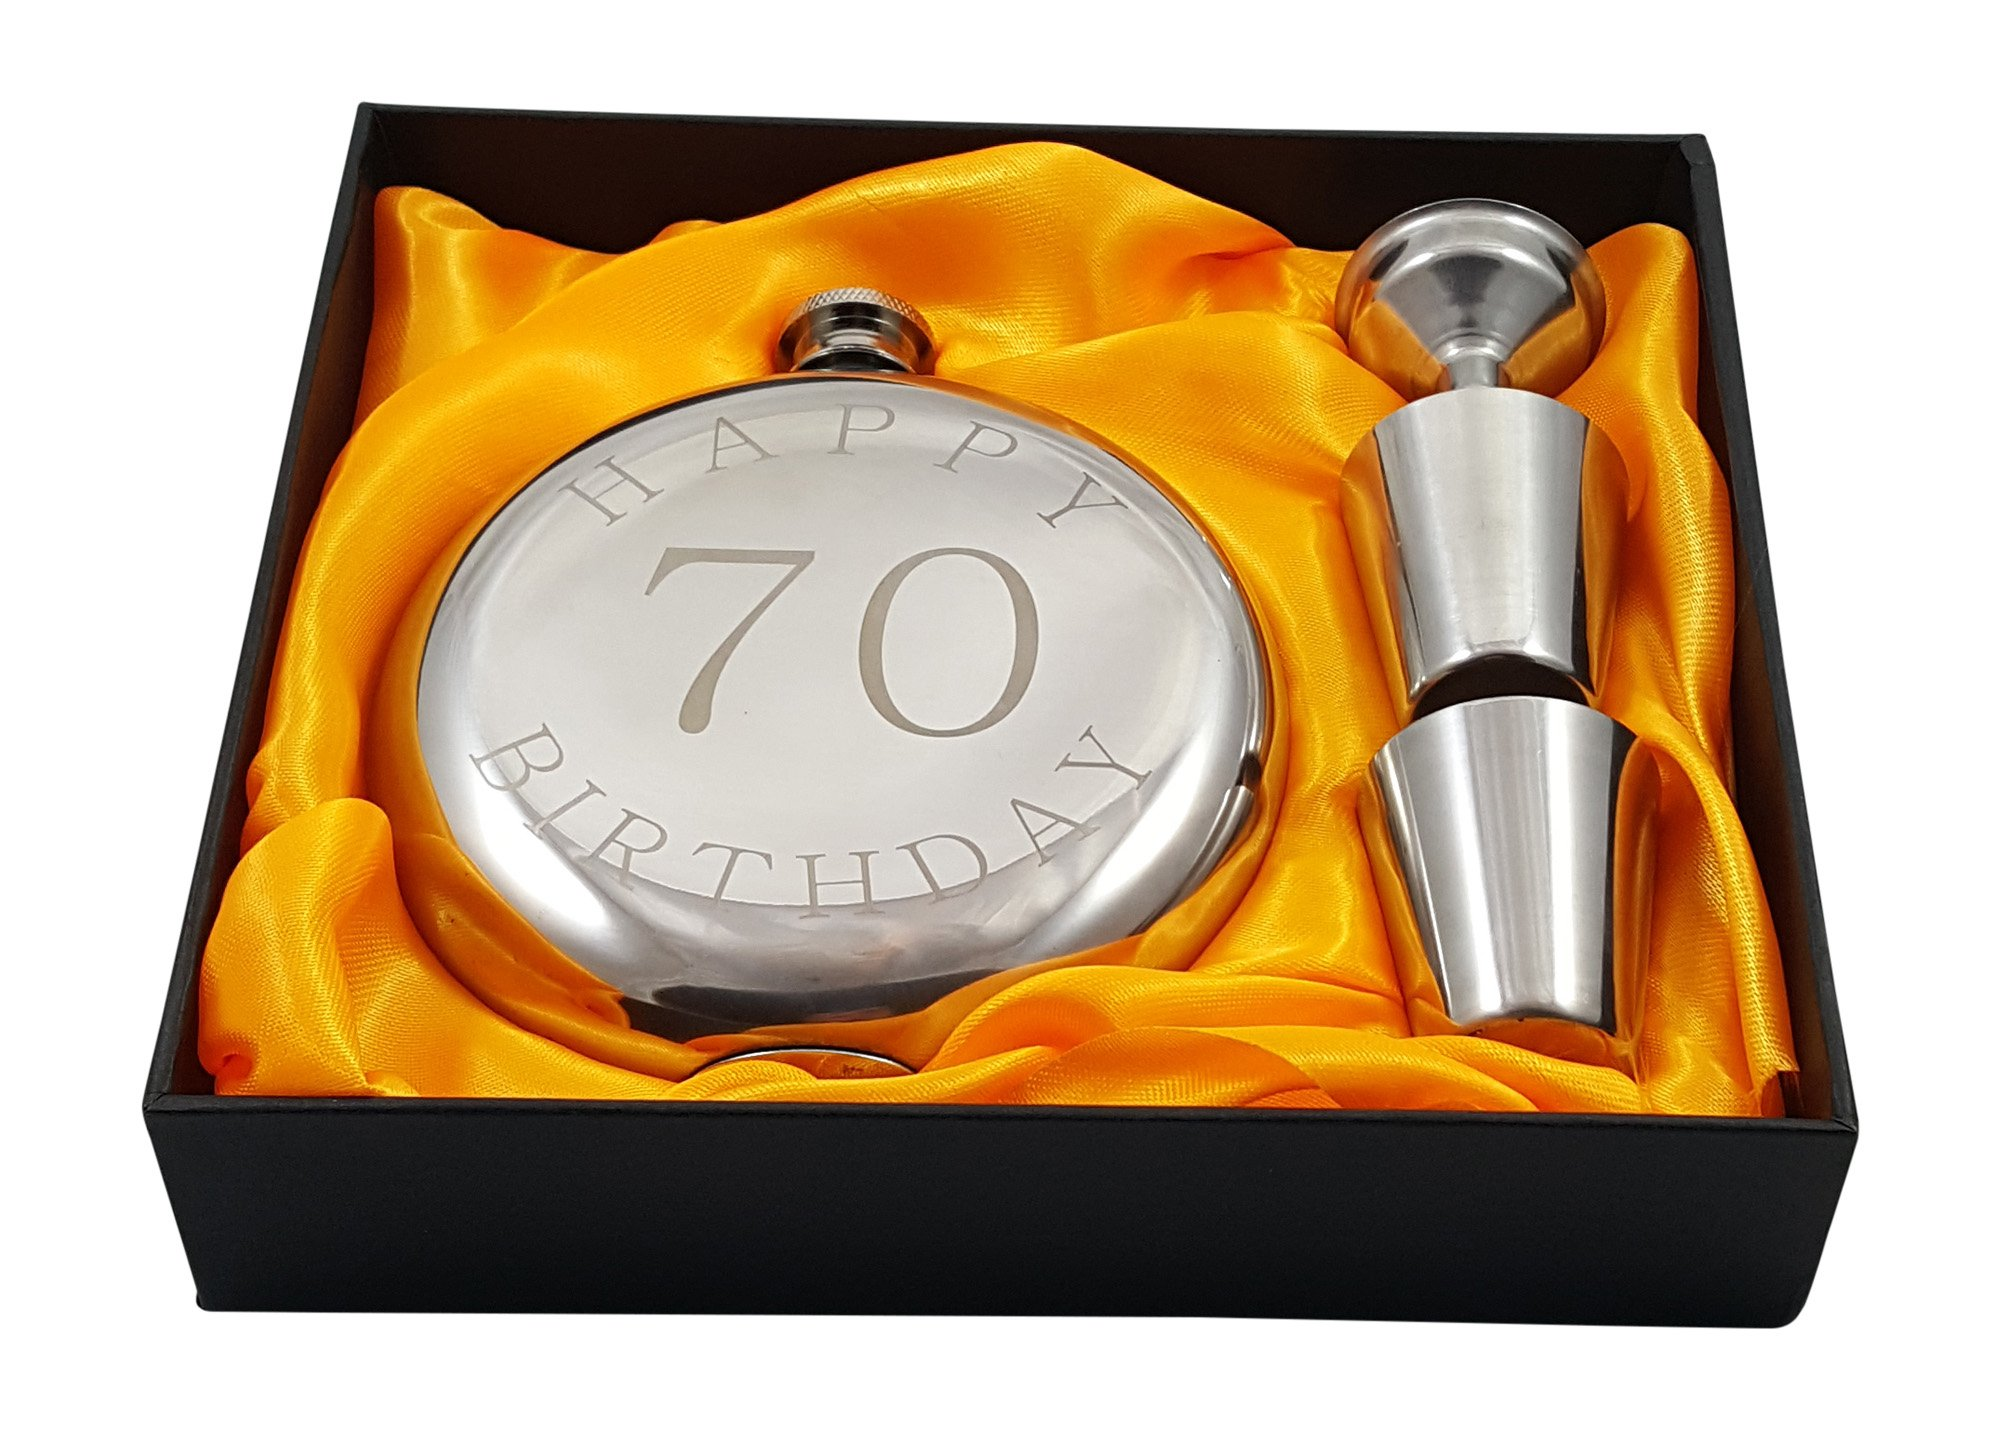 Palm City Products Happy 70th Birthday Flask Gift Set by Palm City Products (Image #1)